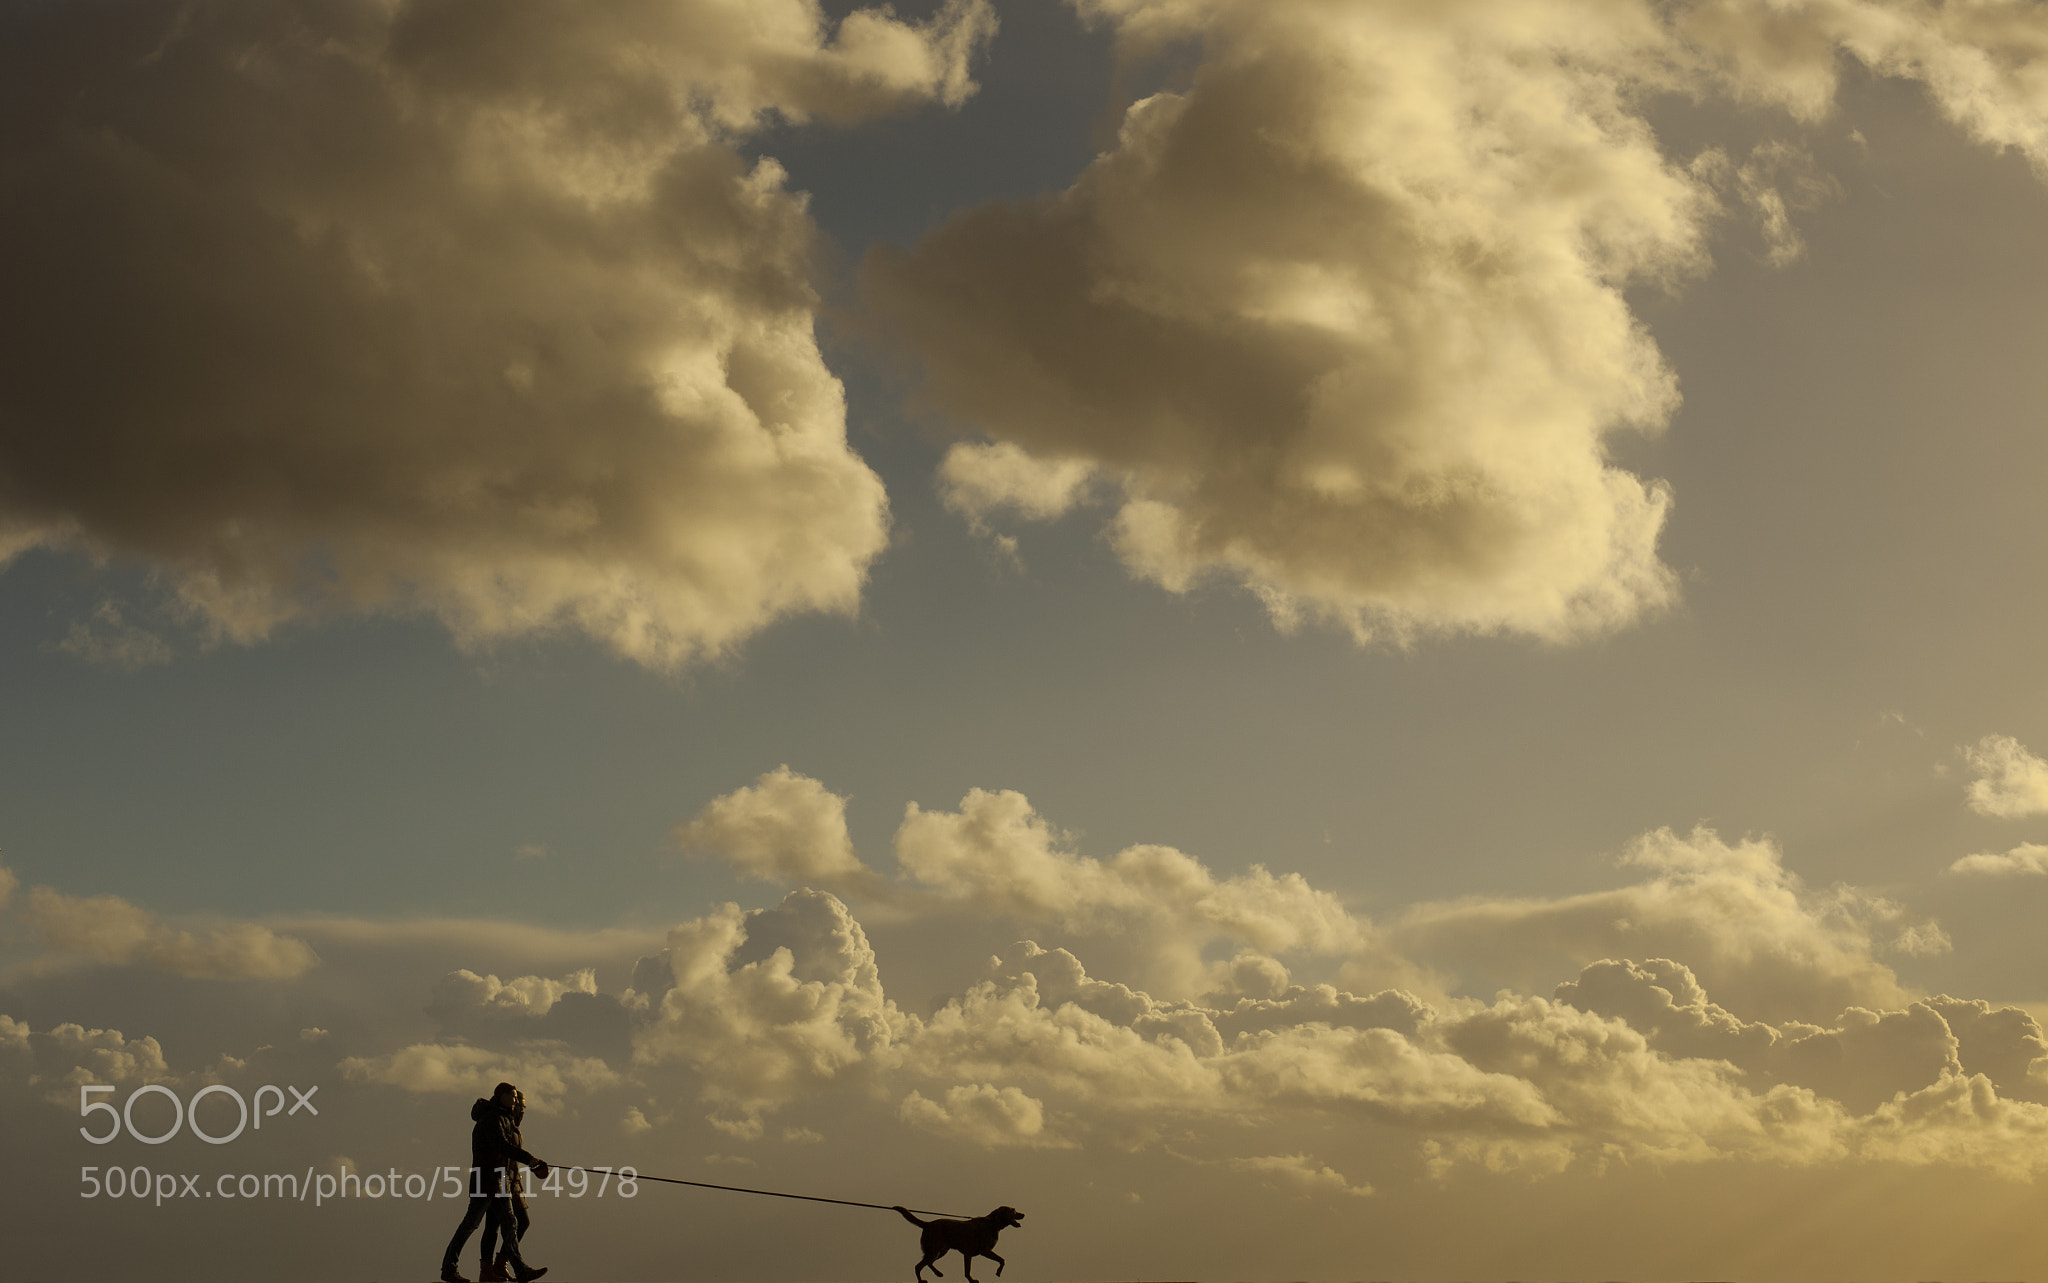 Photograph Skywalkers Part 3 by rnkvnm on 500px